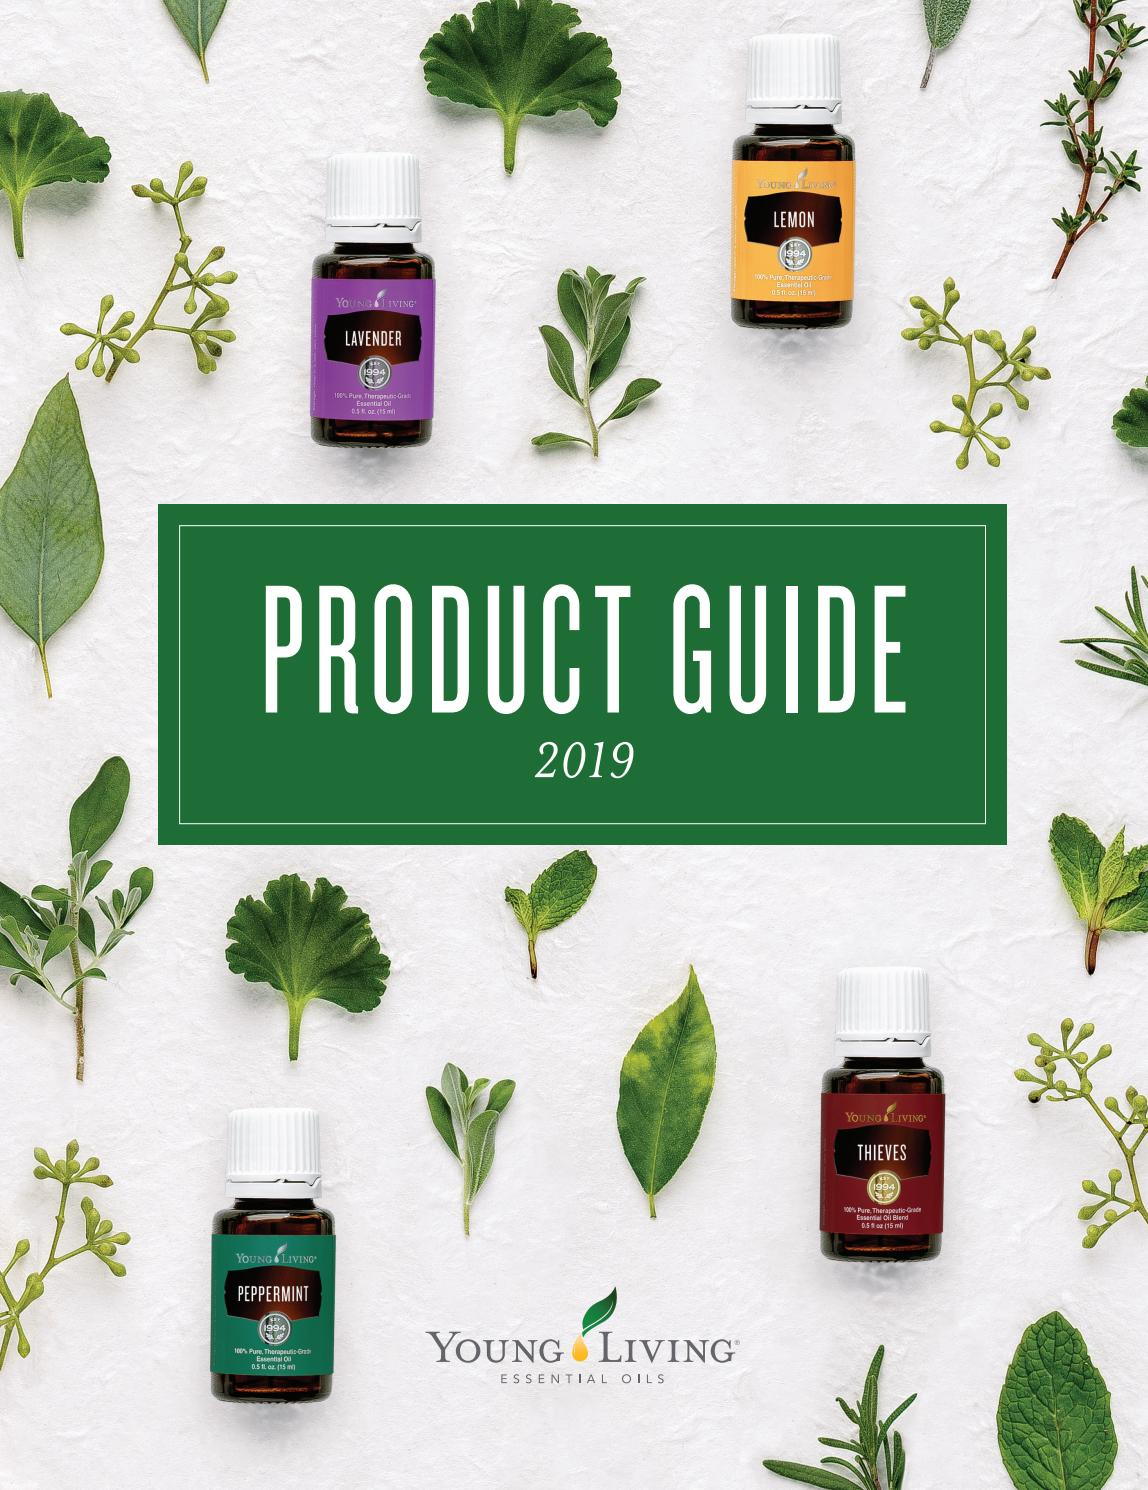 2019 Product Guide U S By Young Living Essential Oils Issuu